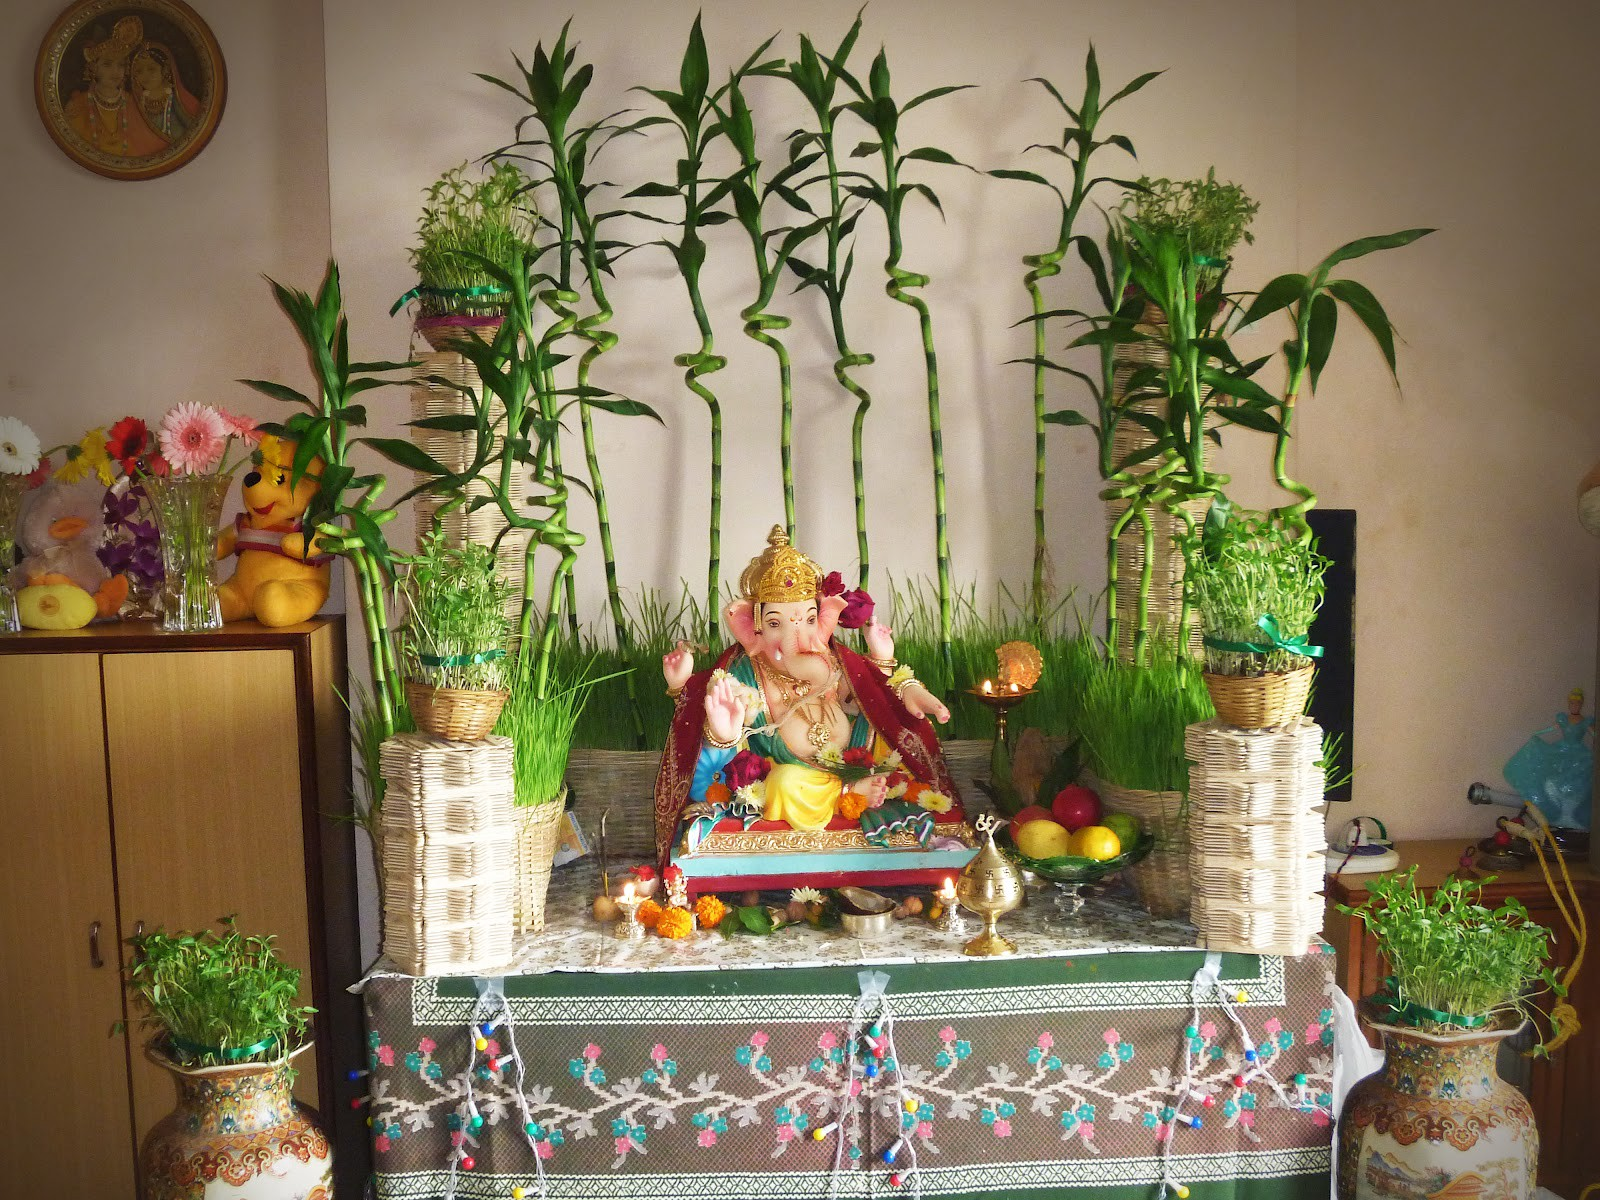 Ganpati decoration ideas at home with